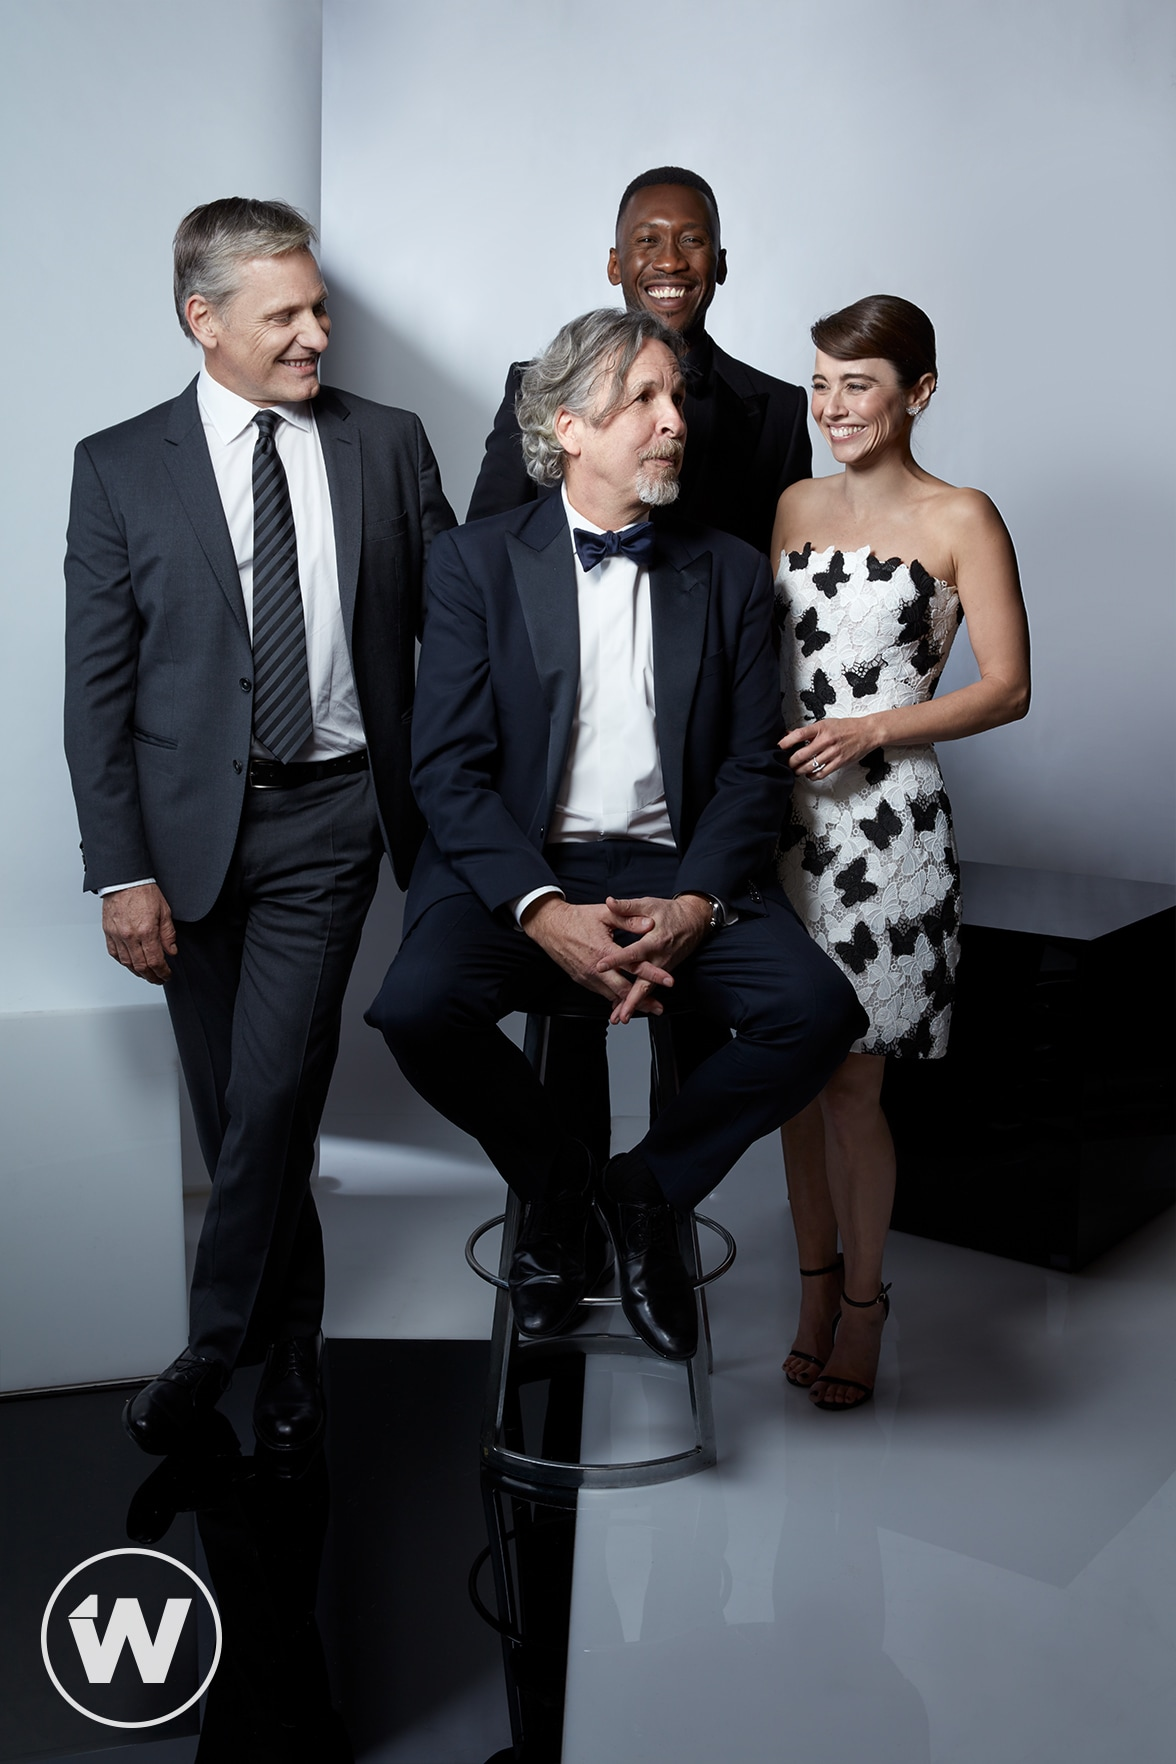 Peter Farrelly, Viggo Mortensen, Mahershala Ali and Linda Cardellini, Greenbook